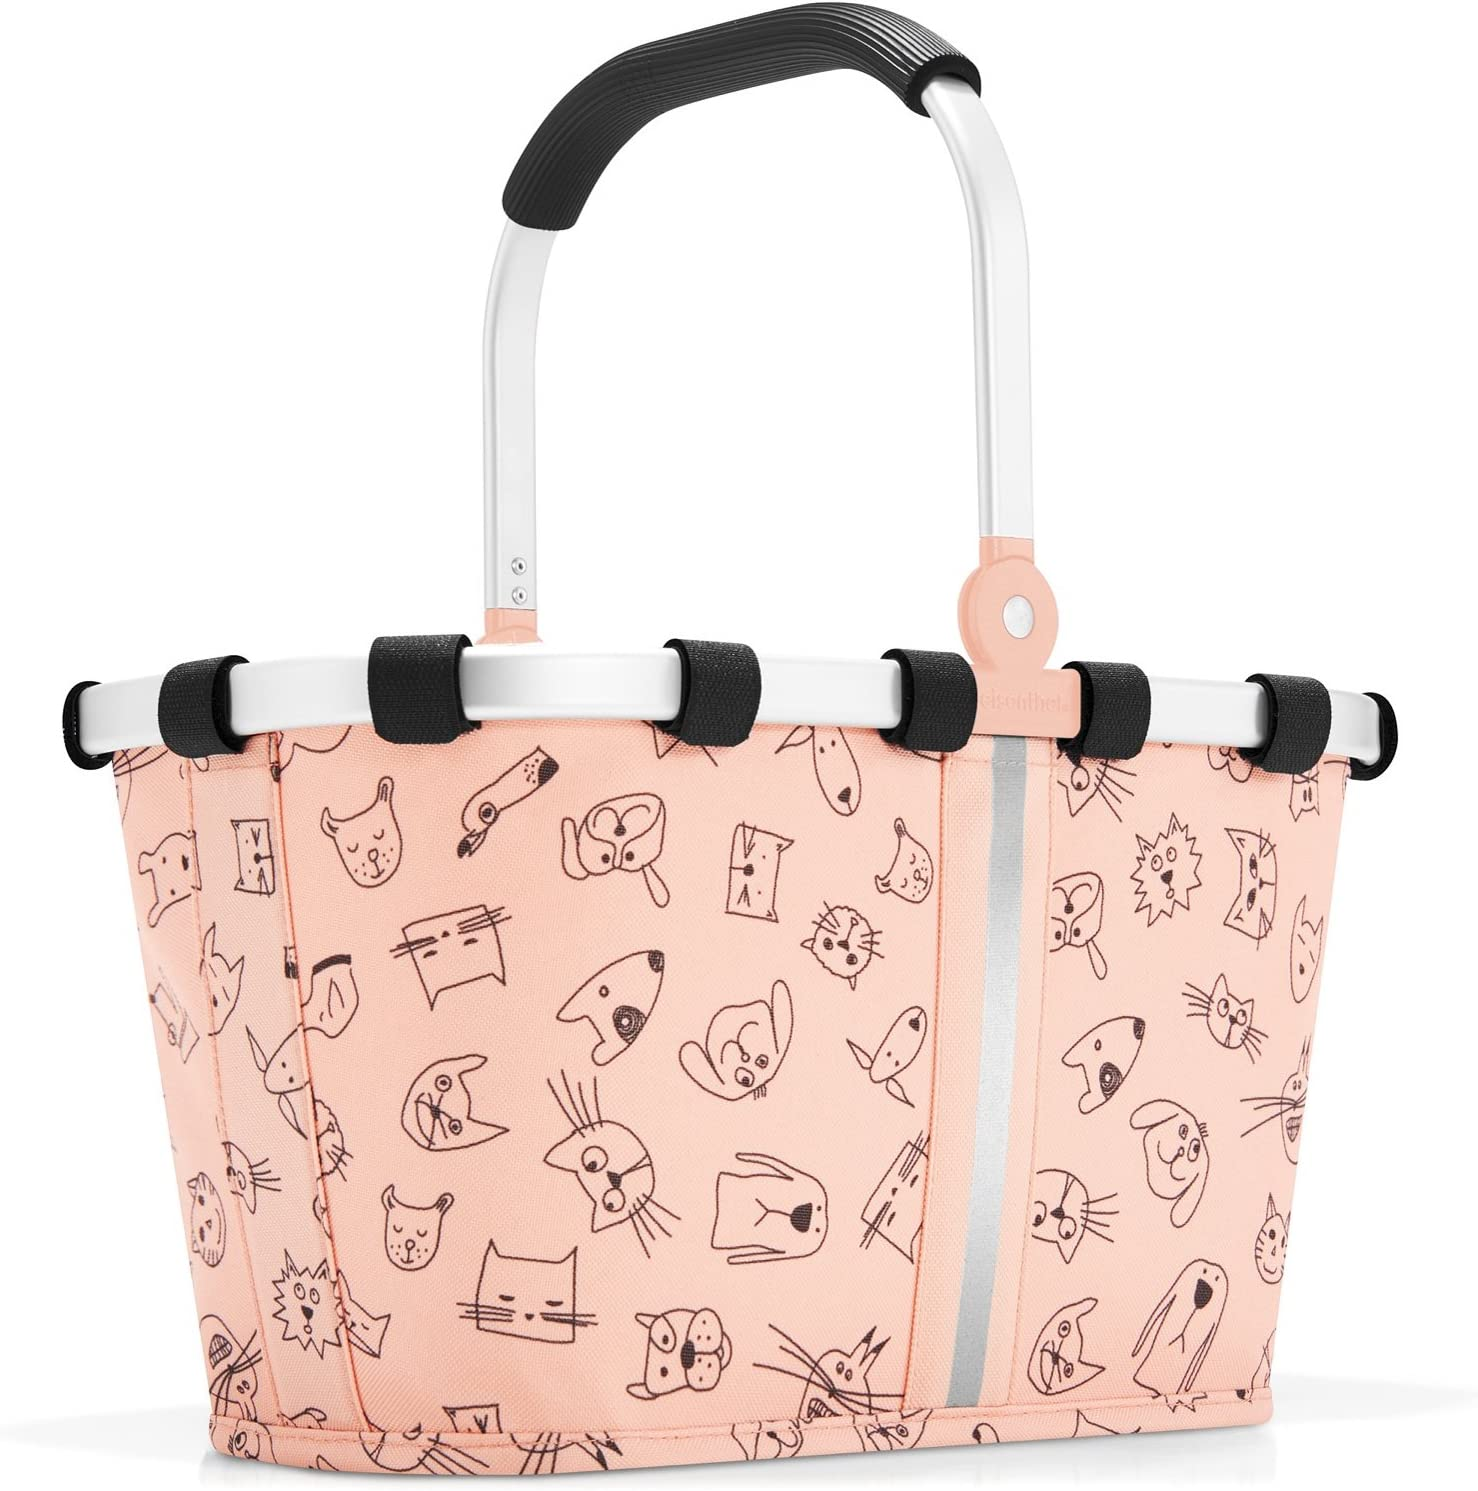 reisenthel Sacramento Mall Carrybag sale XS Kids Extra Bask Small Market Collapsible